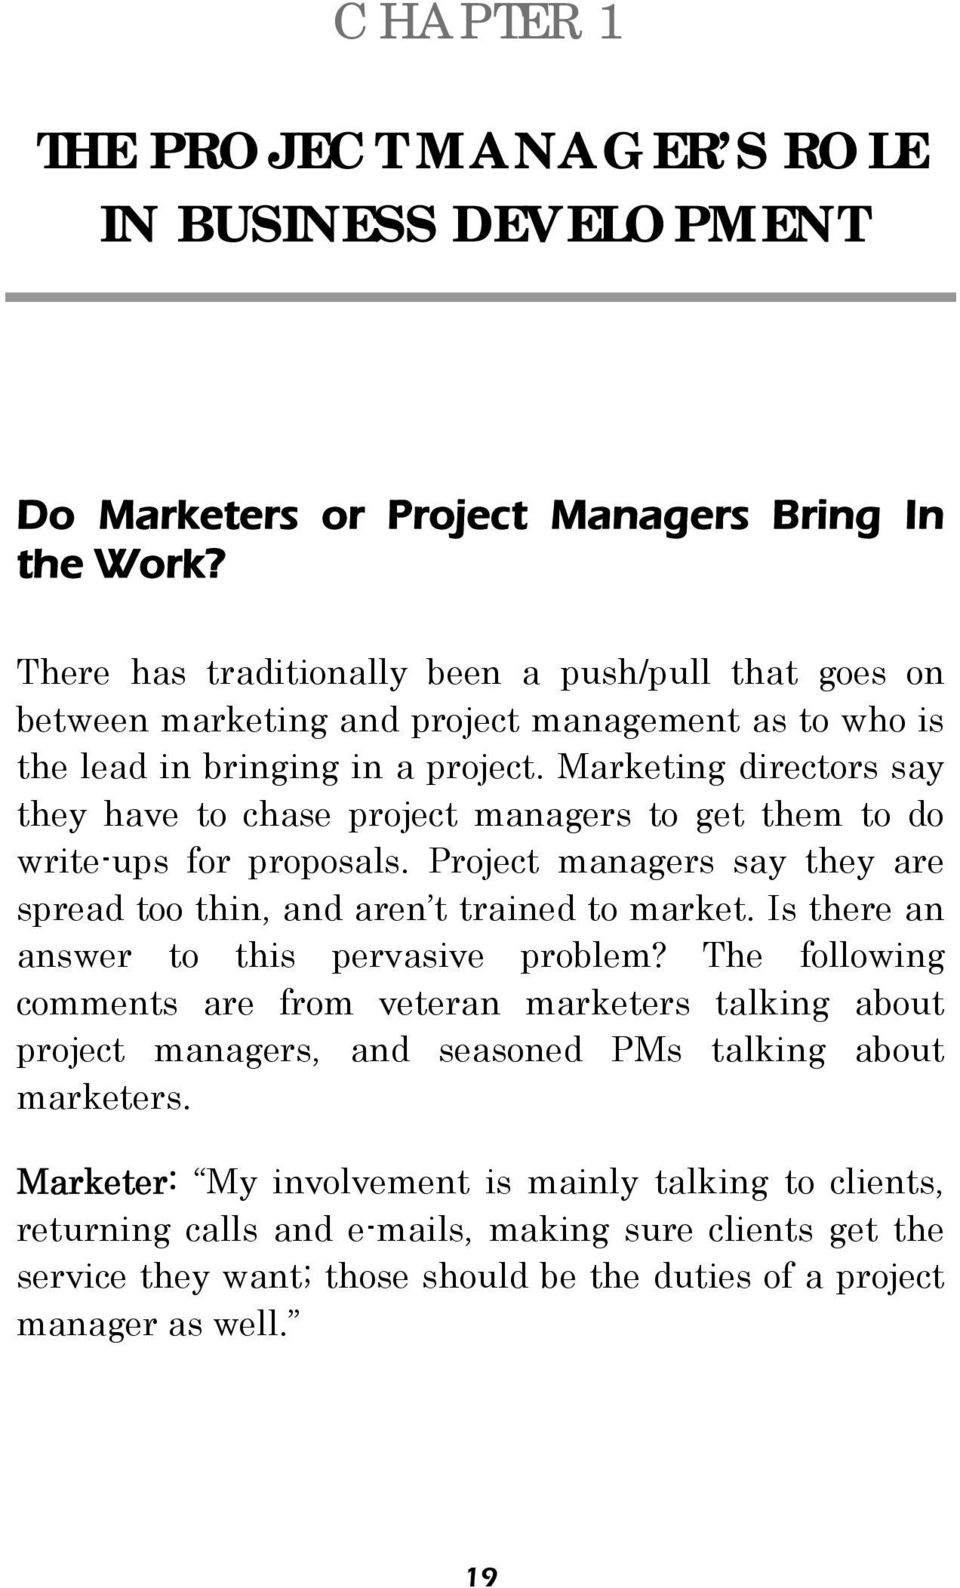 Marketing directors say they have to chase project managers to get them to do write-ups for proposals. Project managers say they are spread too thin, and aren t trained to market.